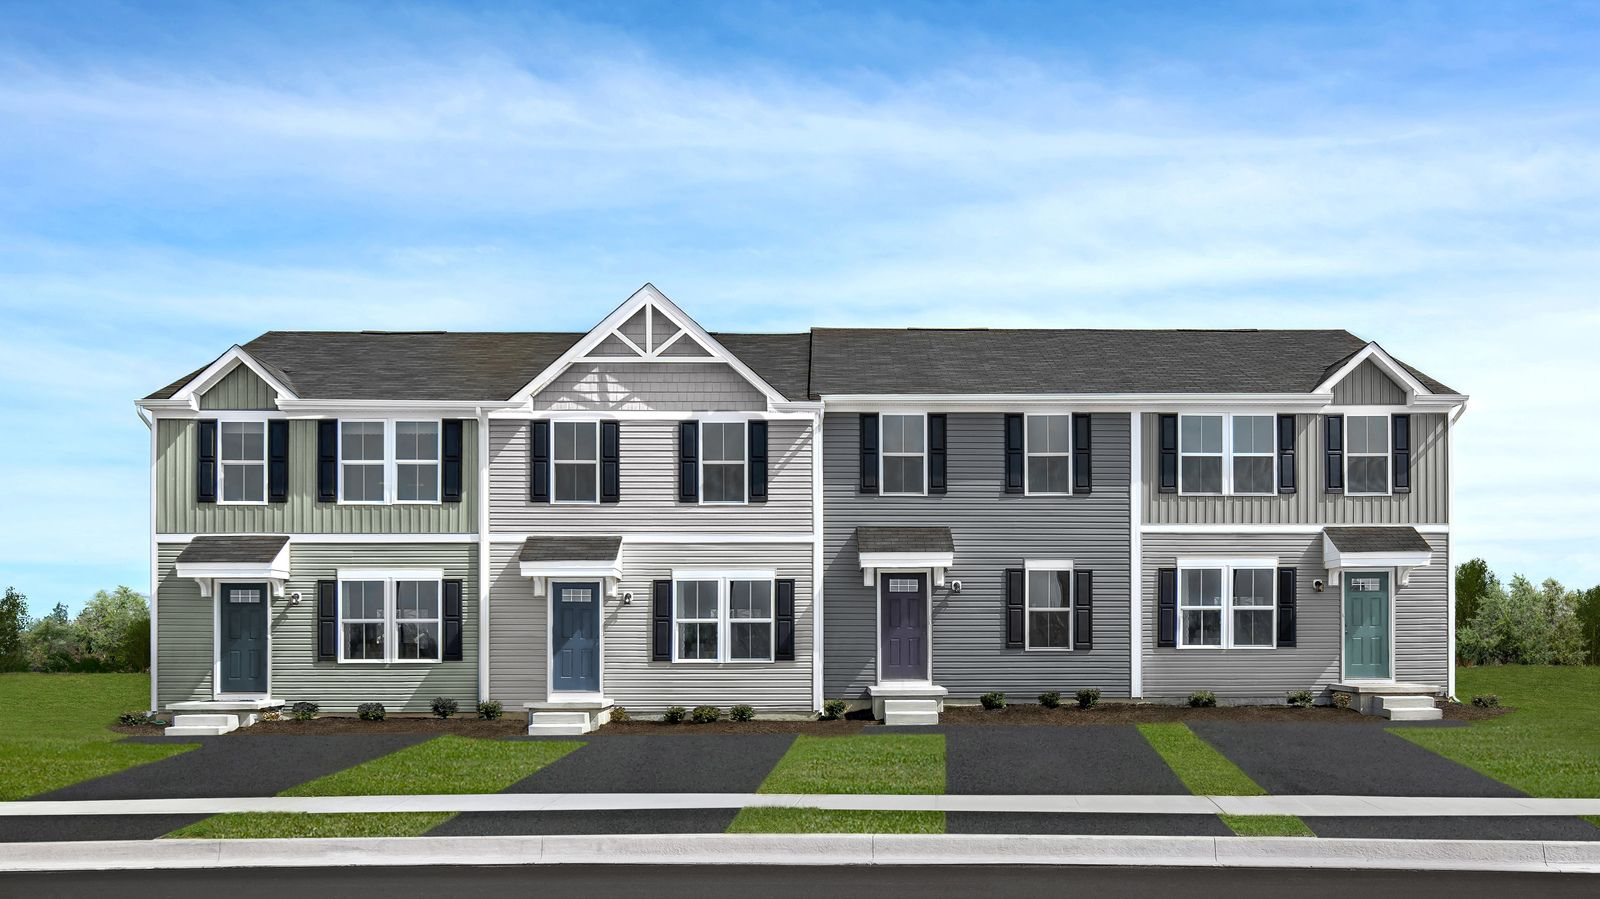 Experience the pride of homeownership in Shady Creek Townes:New to Shady Creek: Maintenance-free 3-bedroom townhomes with private yards, only 15 min to Harrisonburg, from the low $200s.Start your journey today, click here!